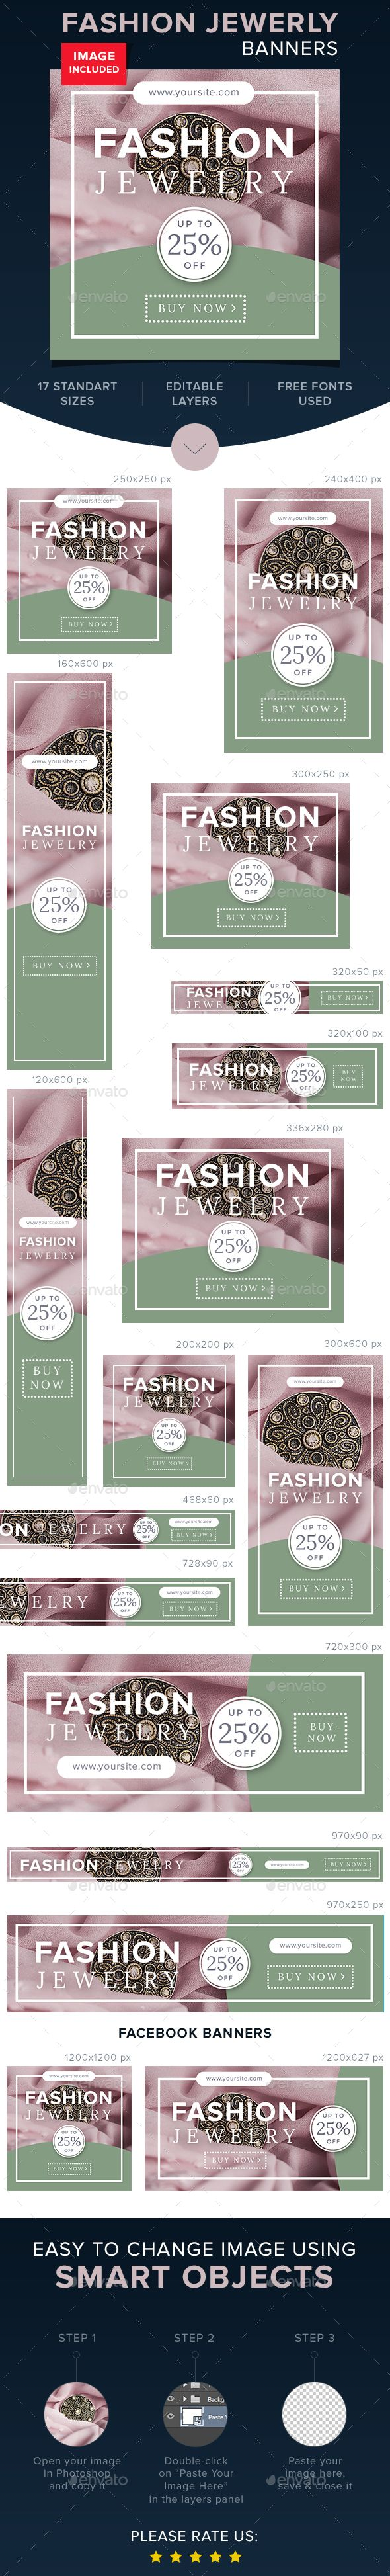 Fashion Jewerly Banners — Photoshop PSD #web banners #promotion • Available here → https://graphicriver.net/item/fashion-jewerly-banners/15966382?ref=pxcr